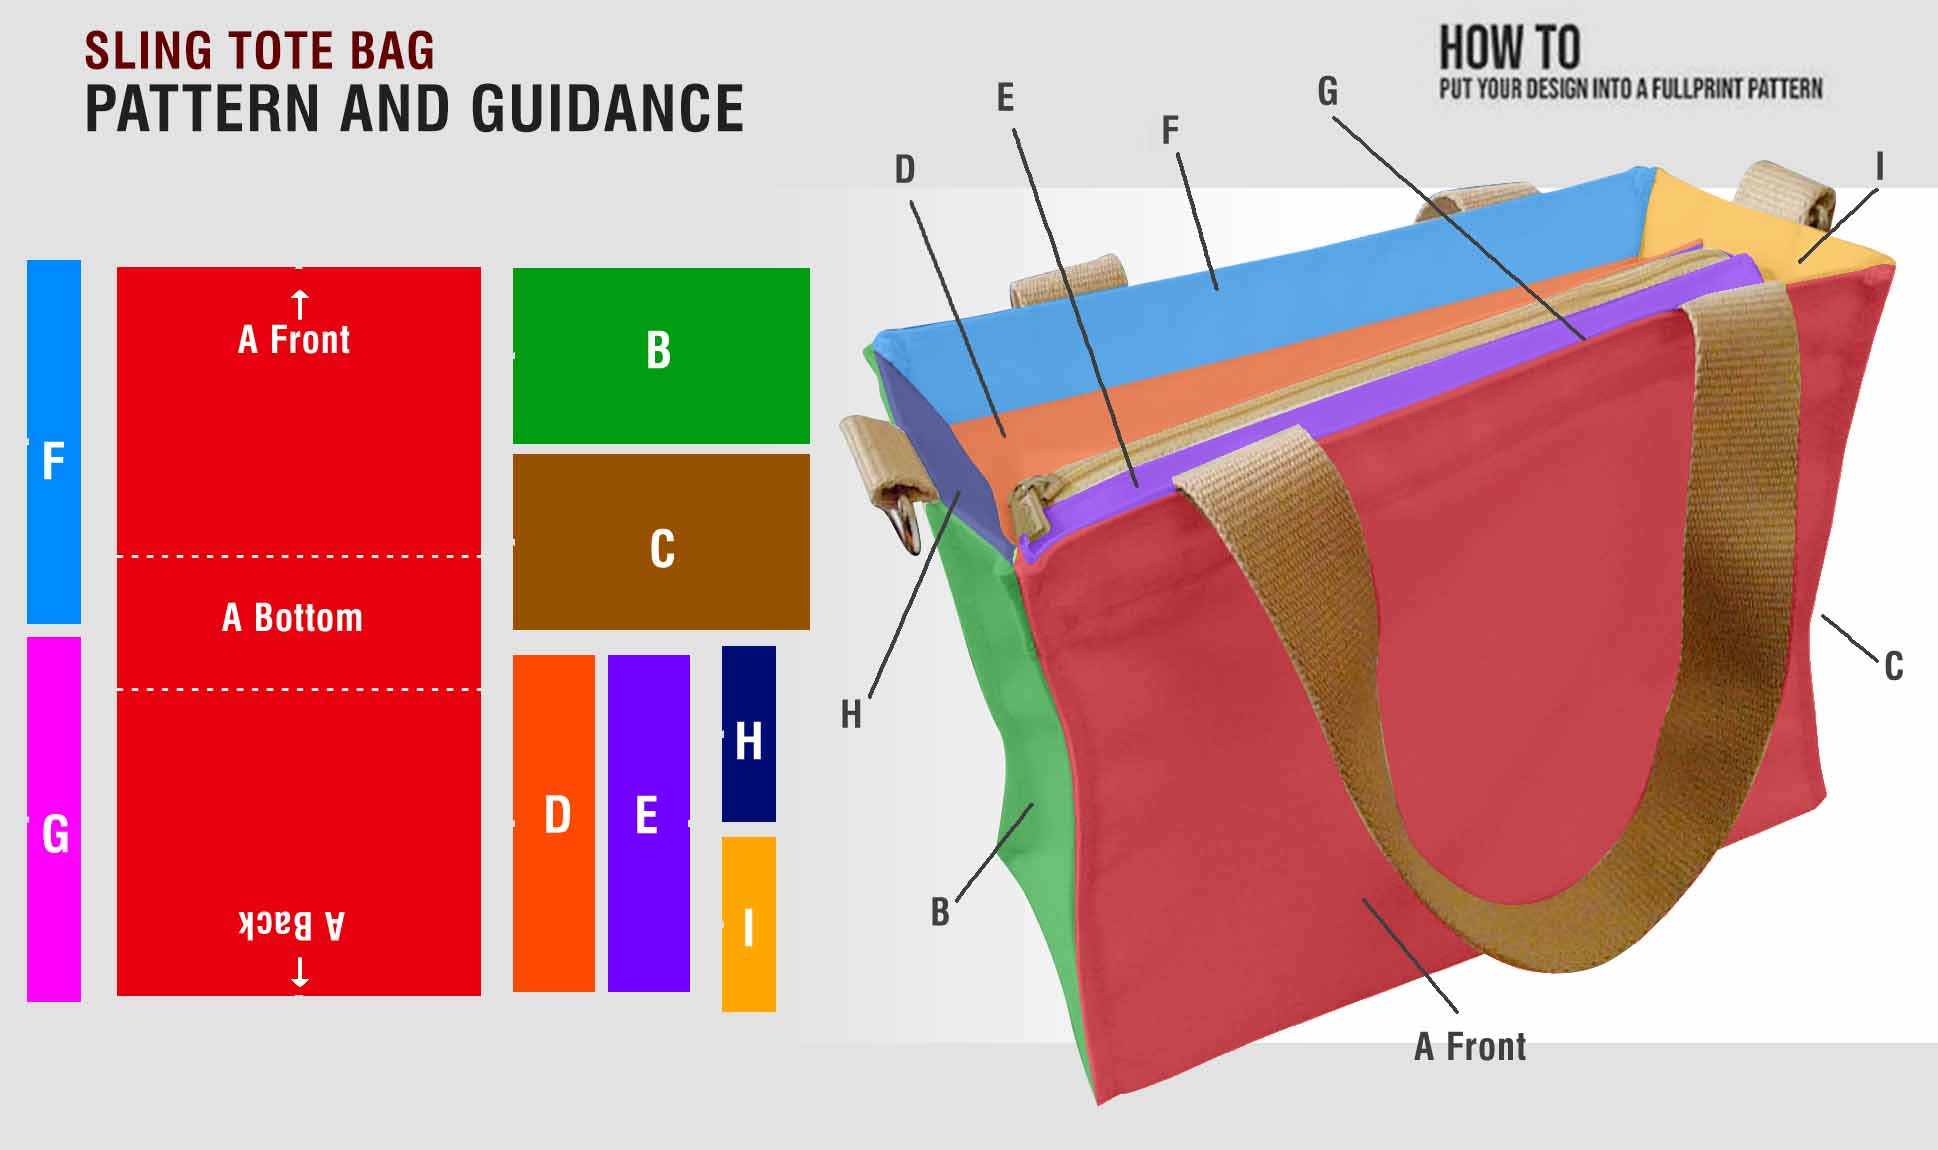 guidance pattern 5